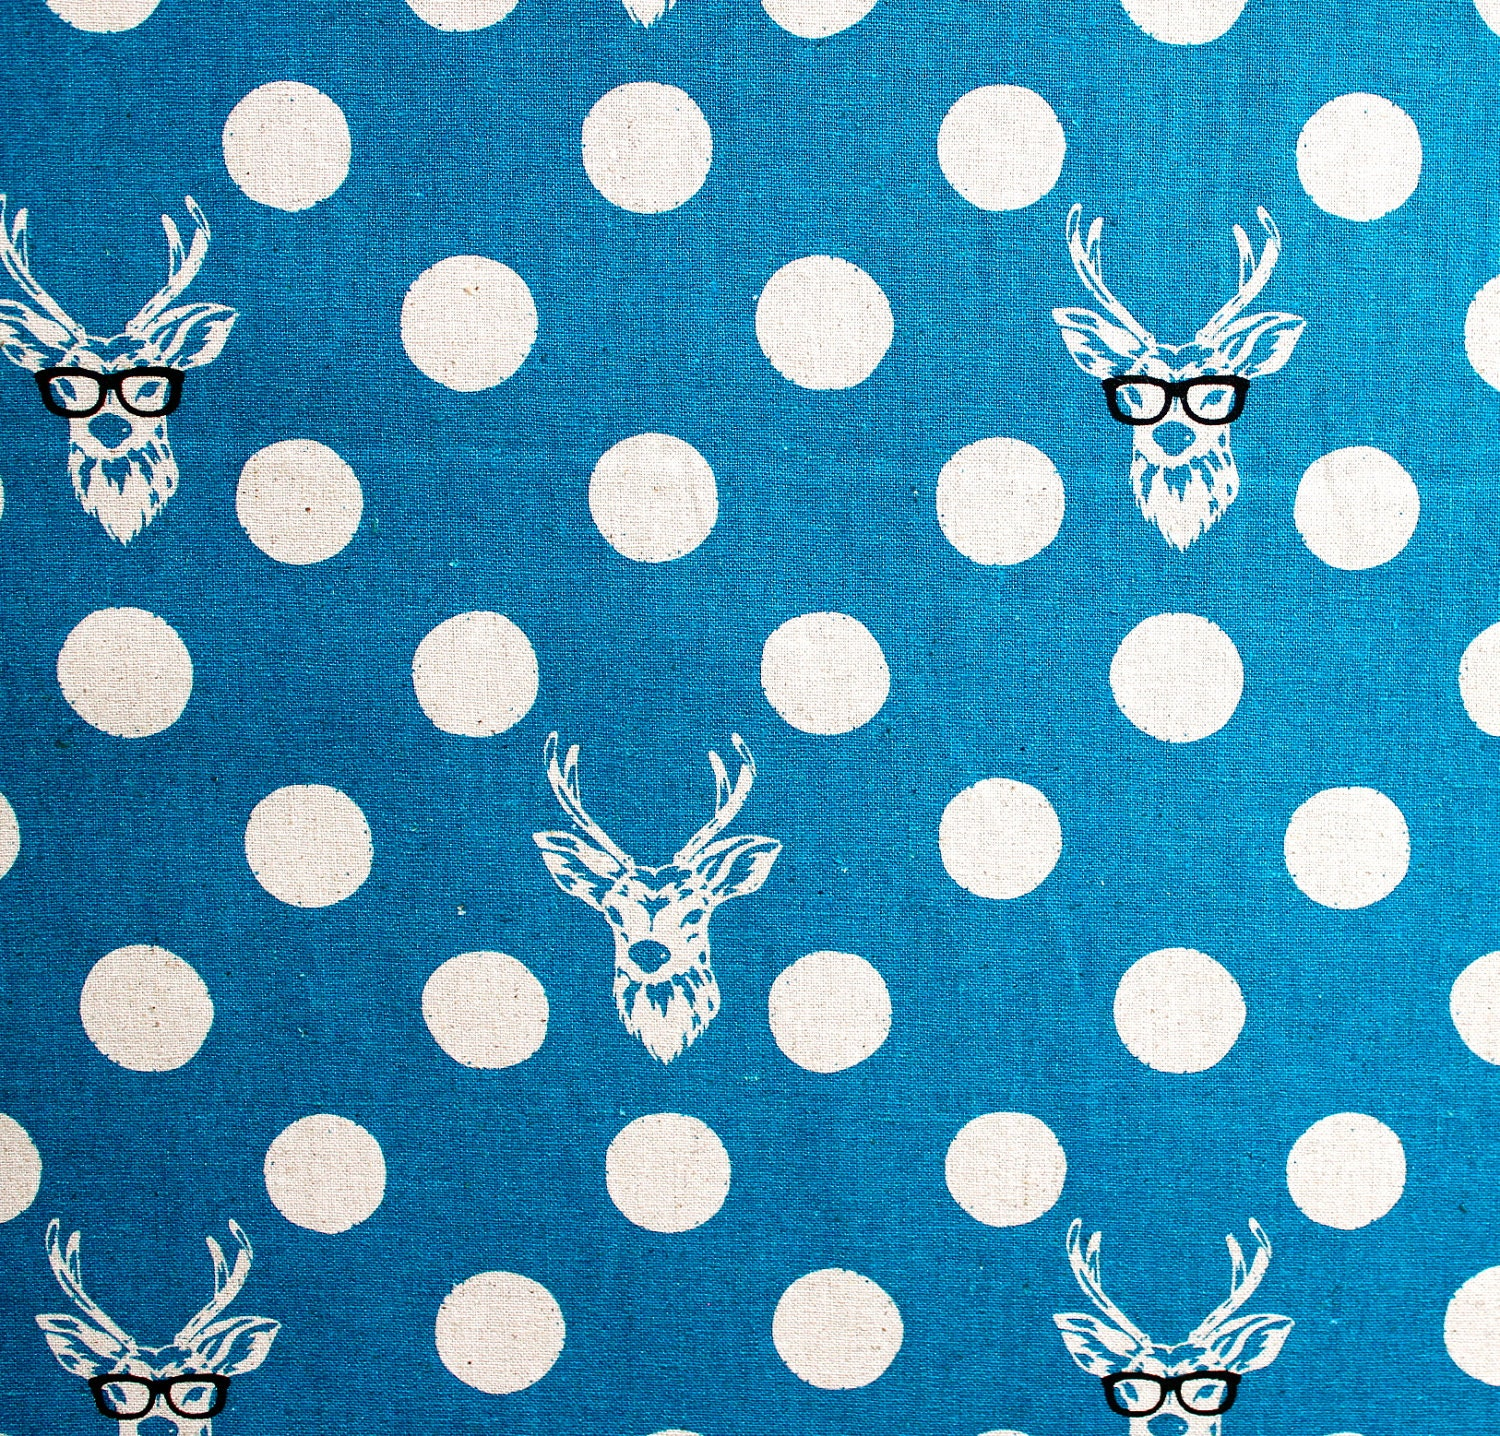 Japanese Fabric Kokka Echino Decoro Buck - blue - fat quarter